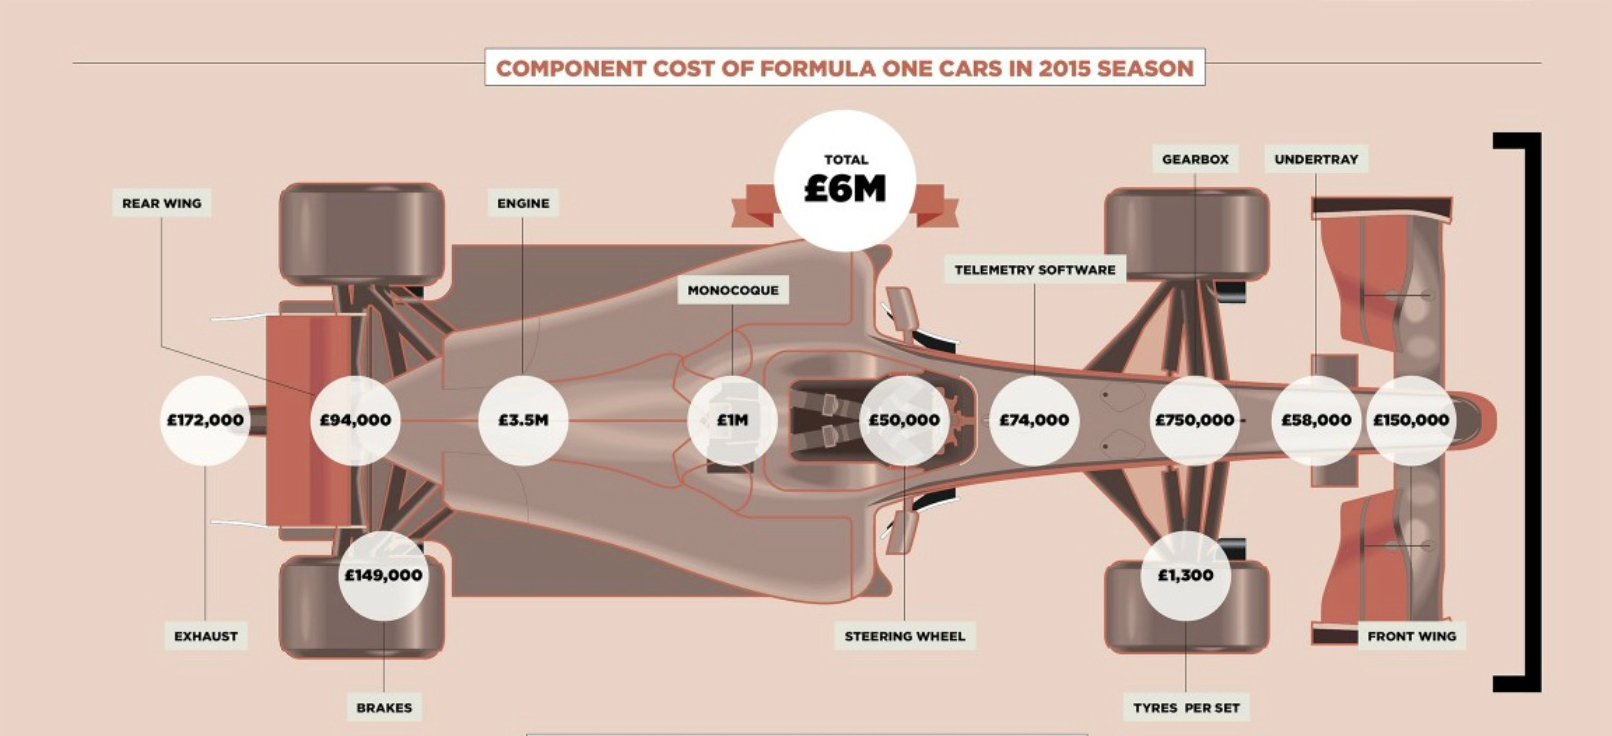 How Much Does A Formula One Car Cost